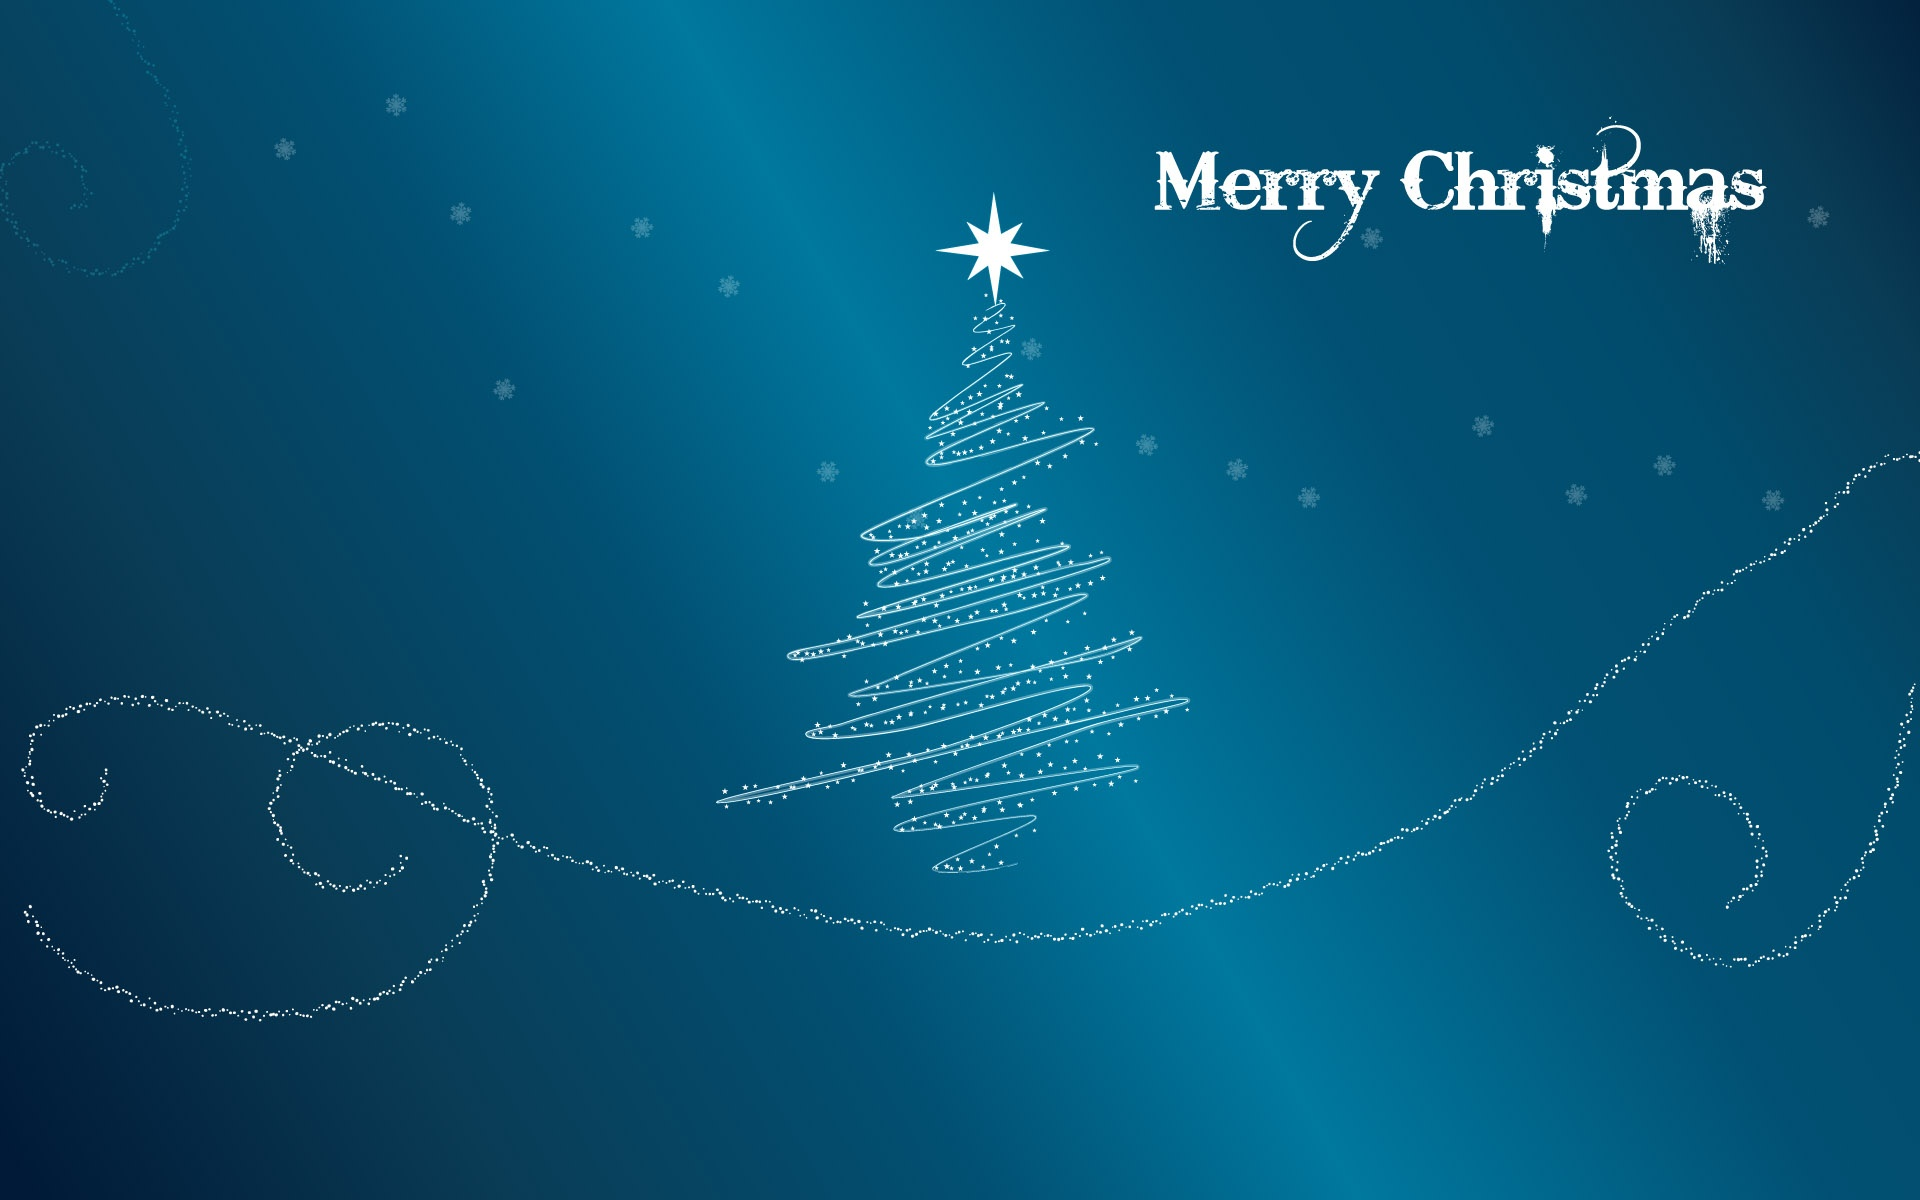 Merry Christmas Glitter Wallpapers In Jpg Format For Free Download